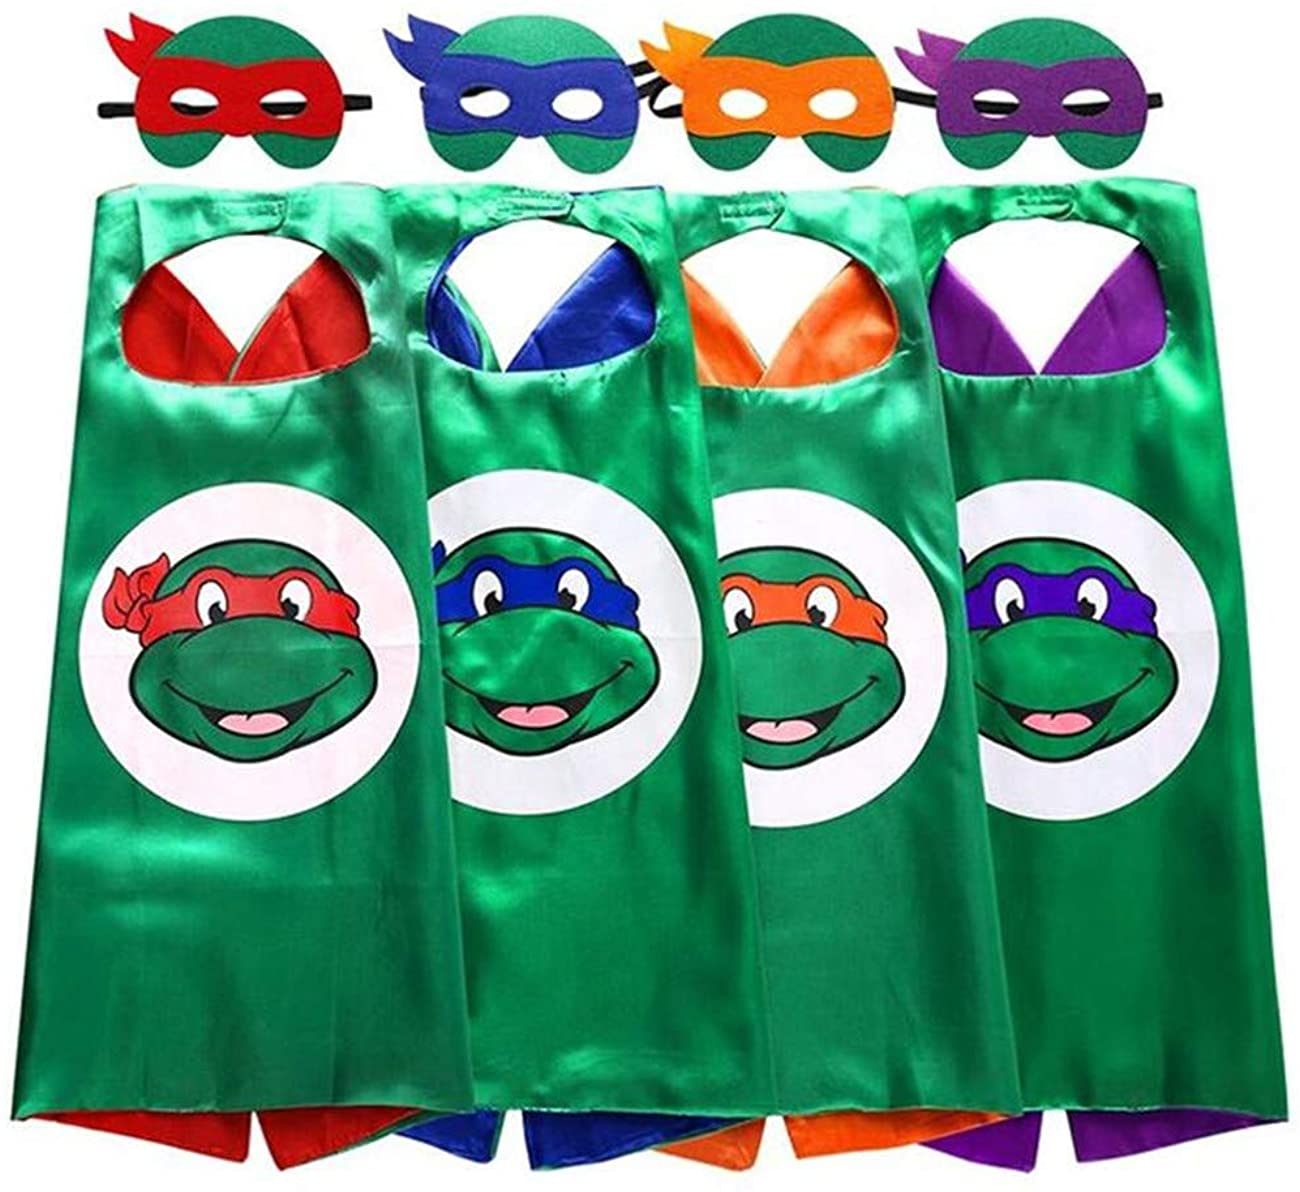 Superhero TMNT Cartoon Costume 4 Thermal Pransfer Satin Cape with Felt Mask